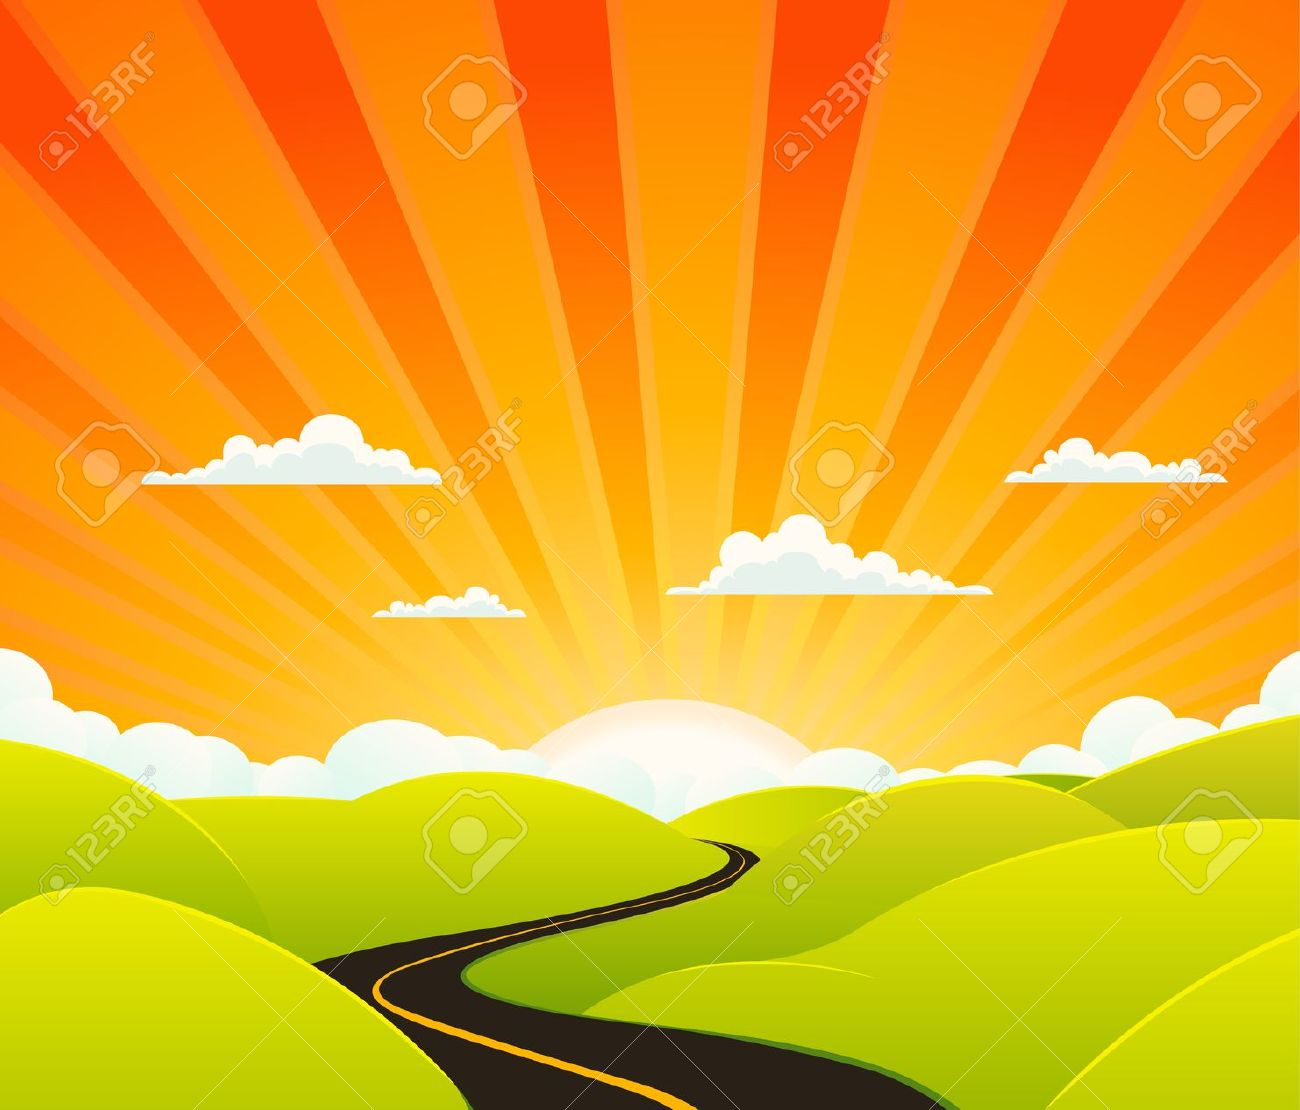 Journey road clipart.